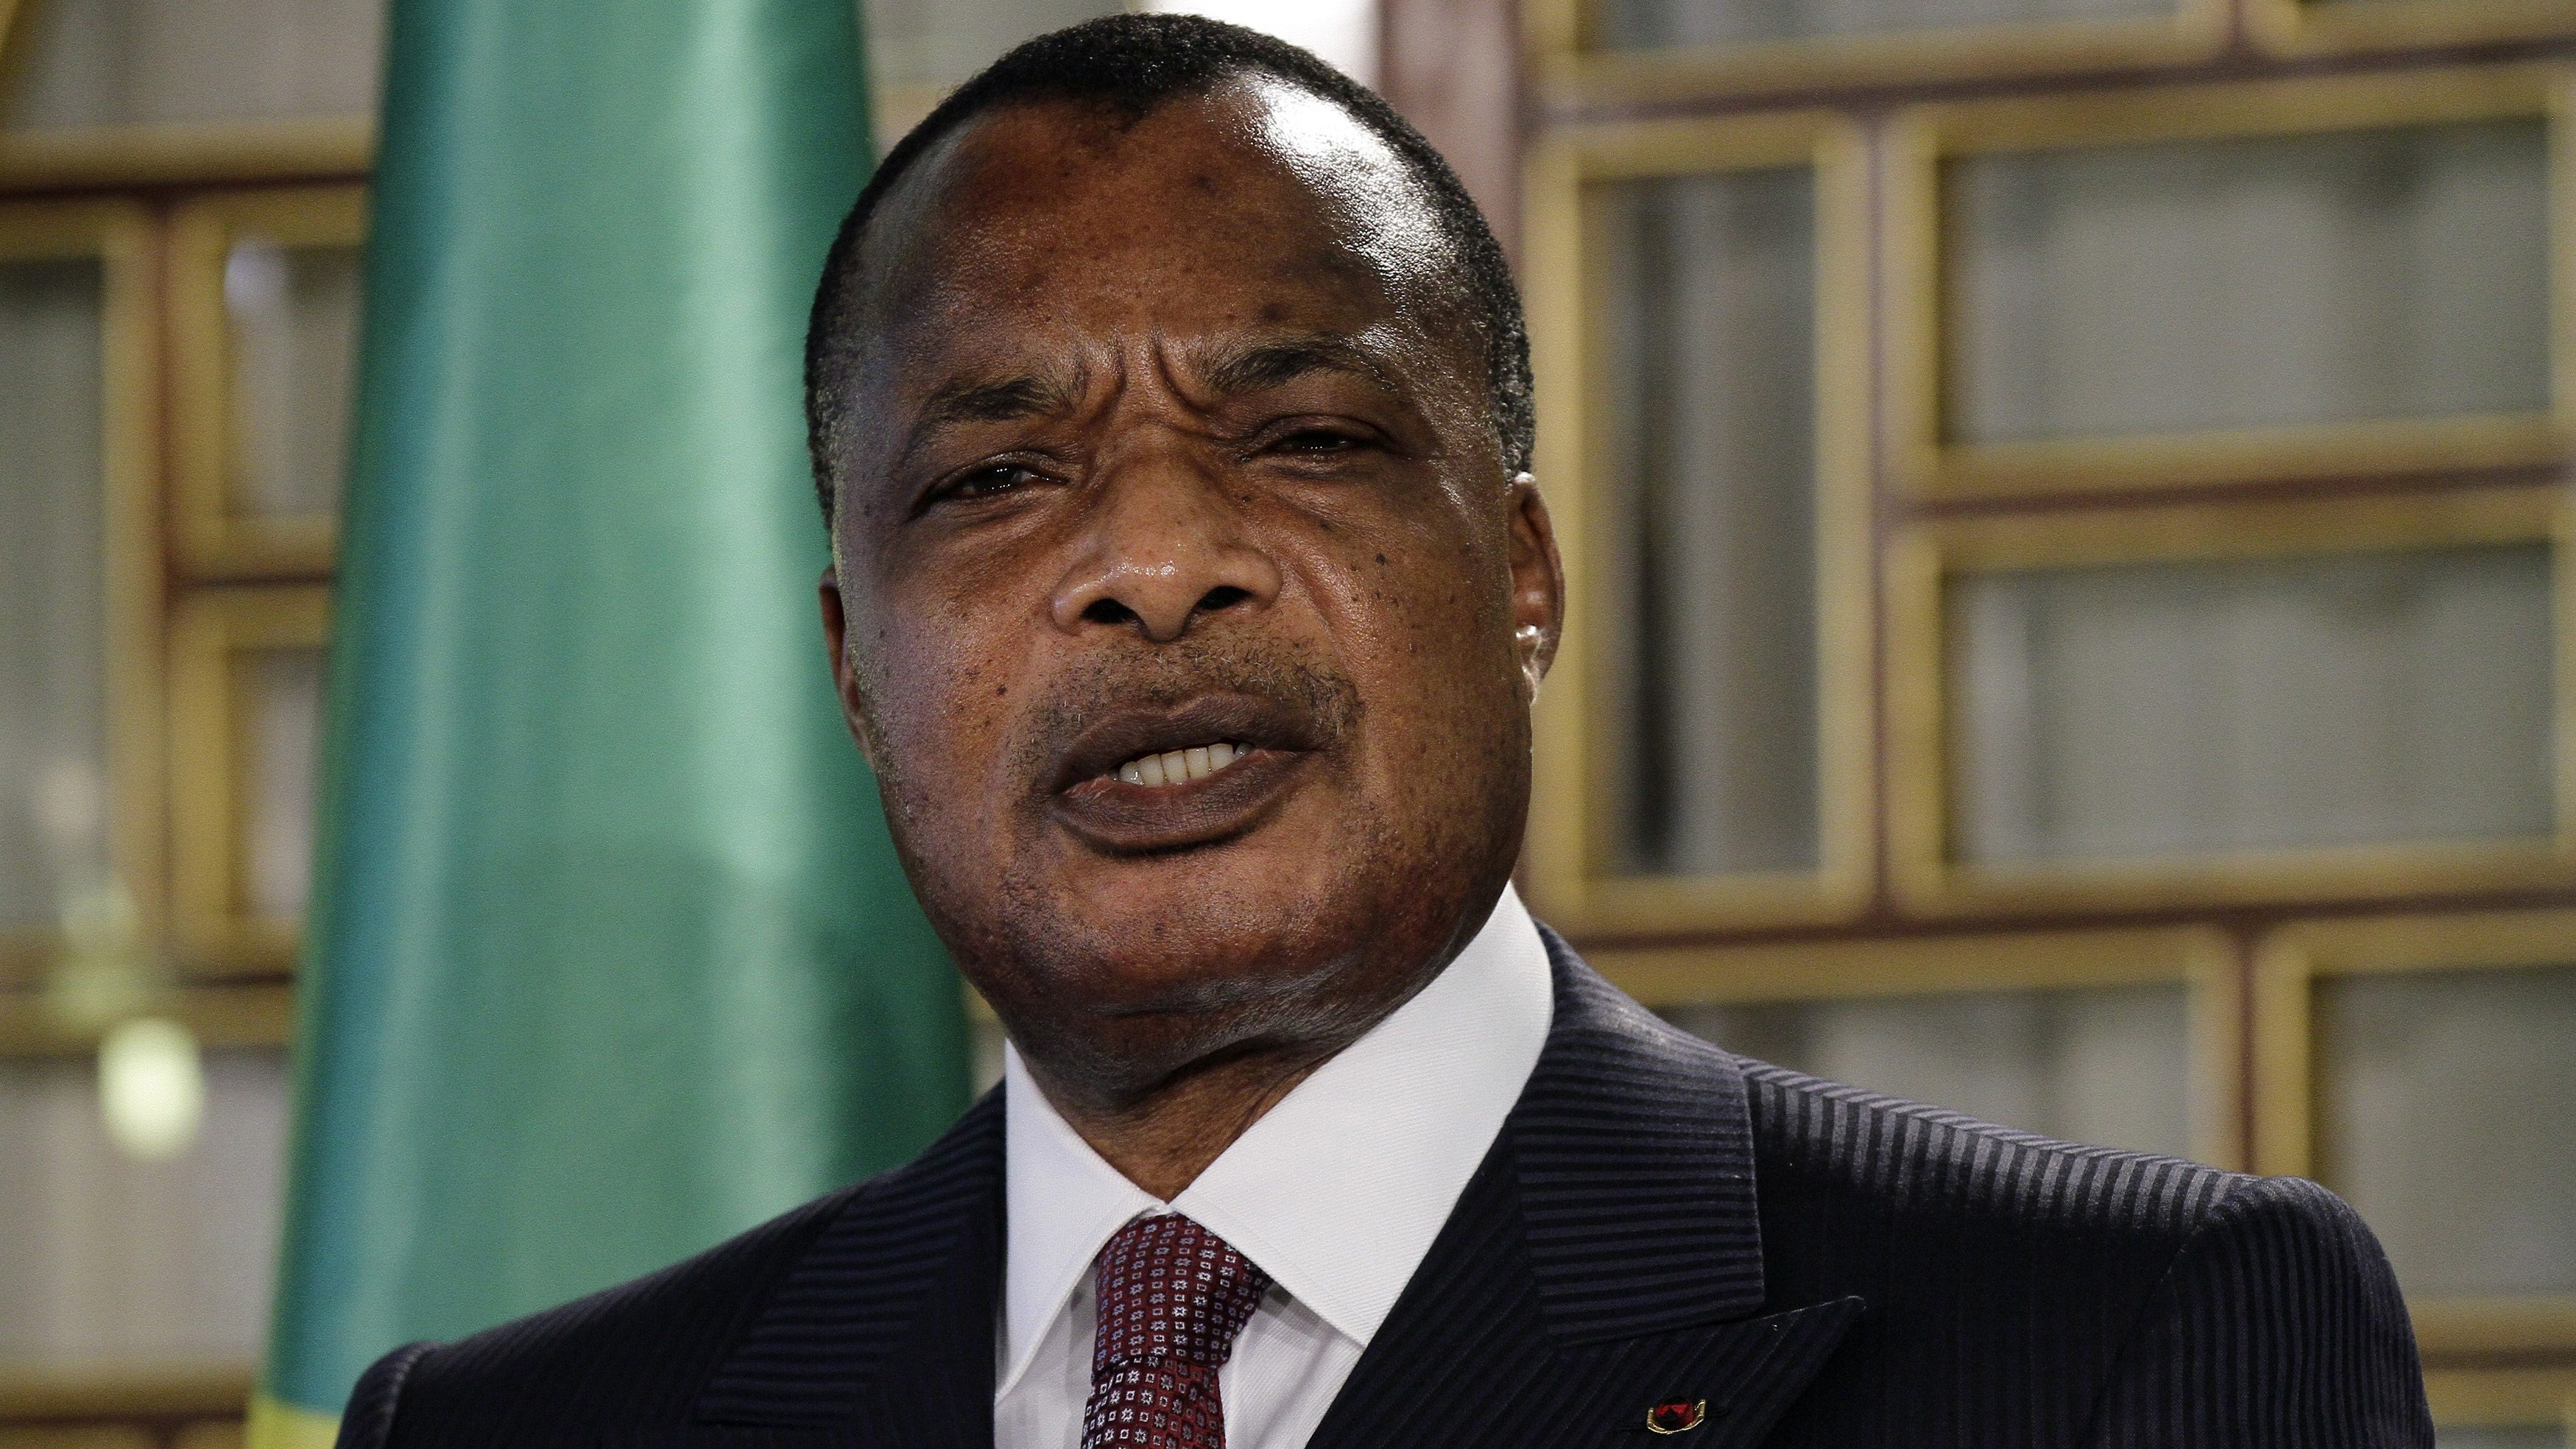 Congo Republic President Denis Sassou Nguesso speaks during a news conference at Carthage Palace in Tunis